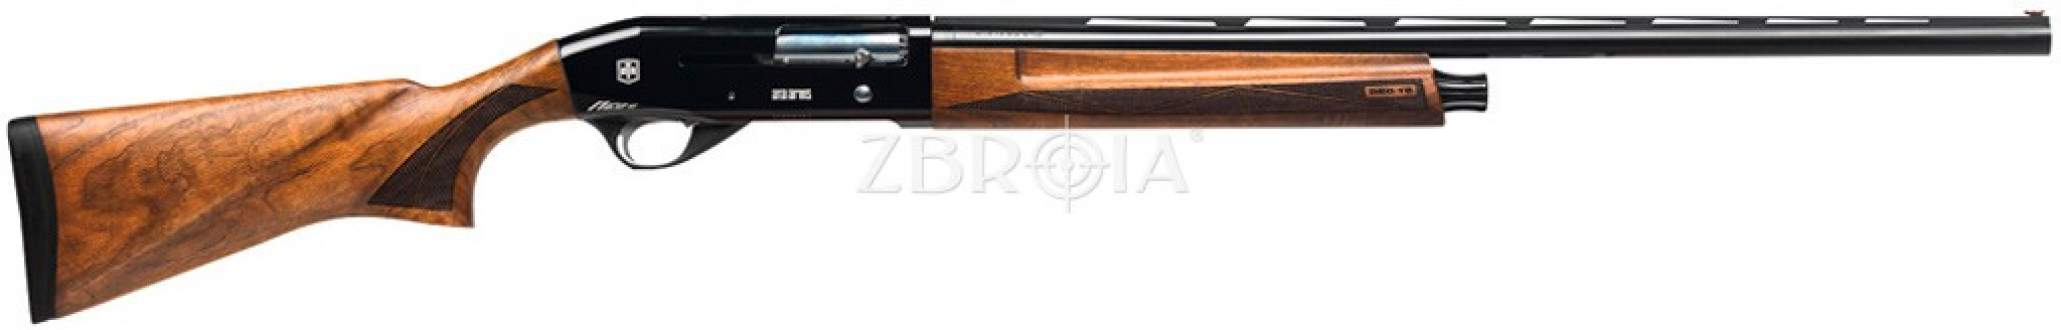 Ружье Ata Arms NEO12 Walnut кал. 12/76 (ствол 66 см.)